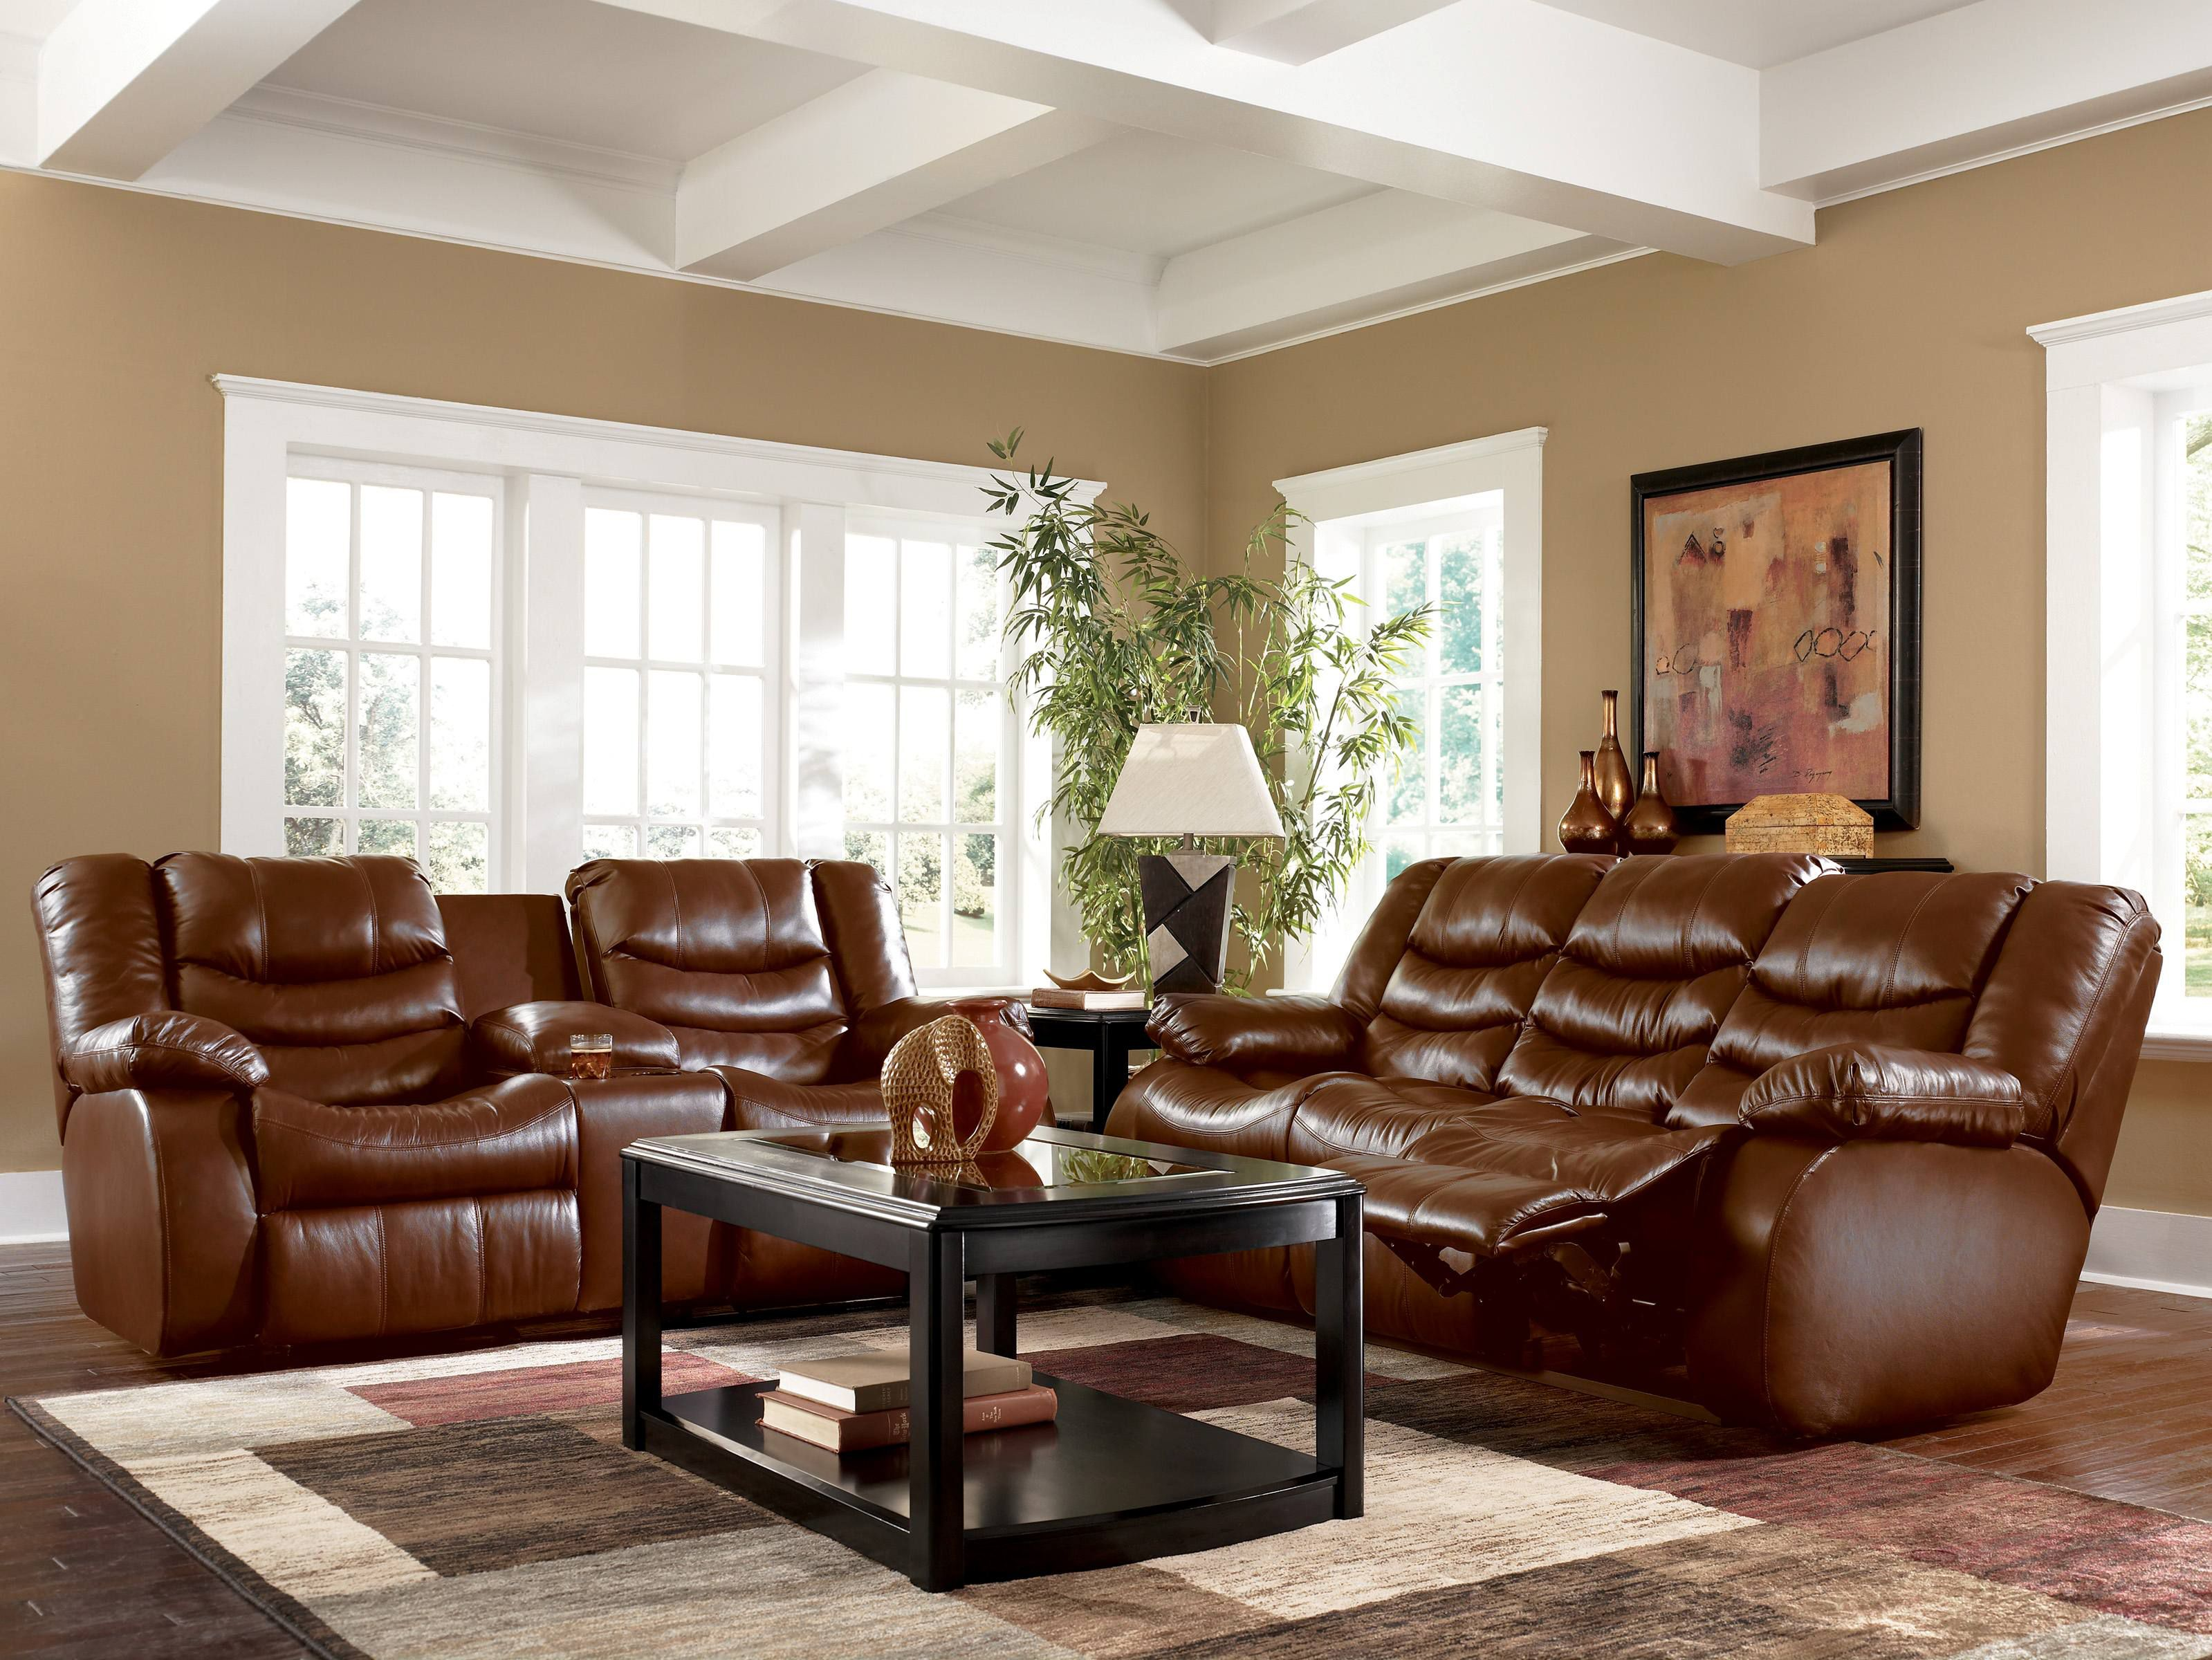 living rooms with leather couches. Living Room with Brown Couches  I like the white around windows tree